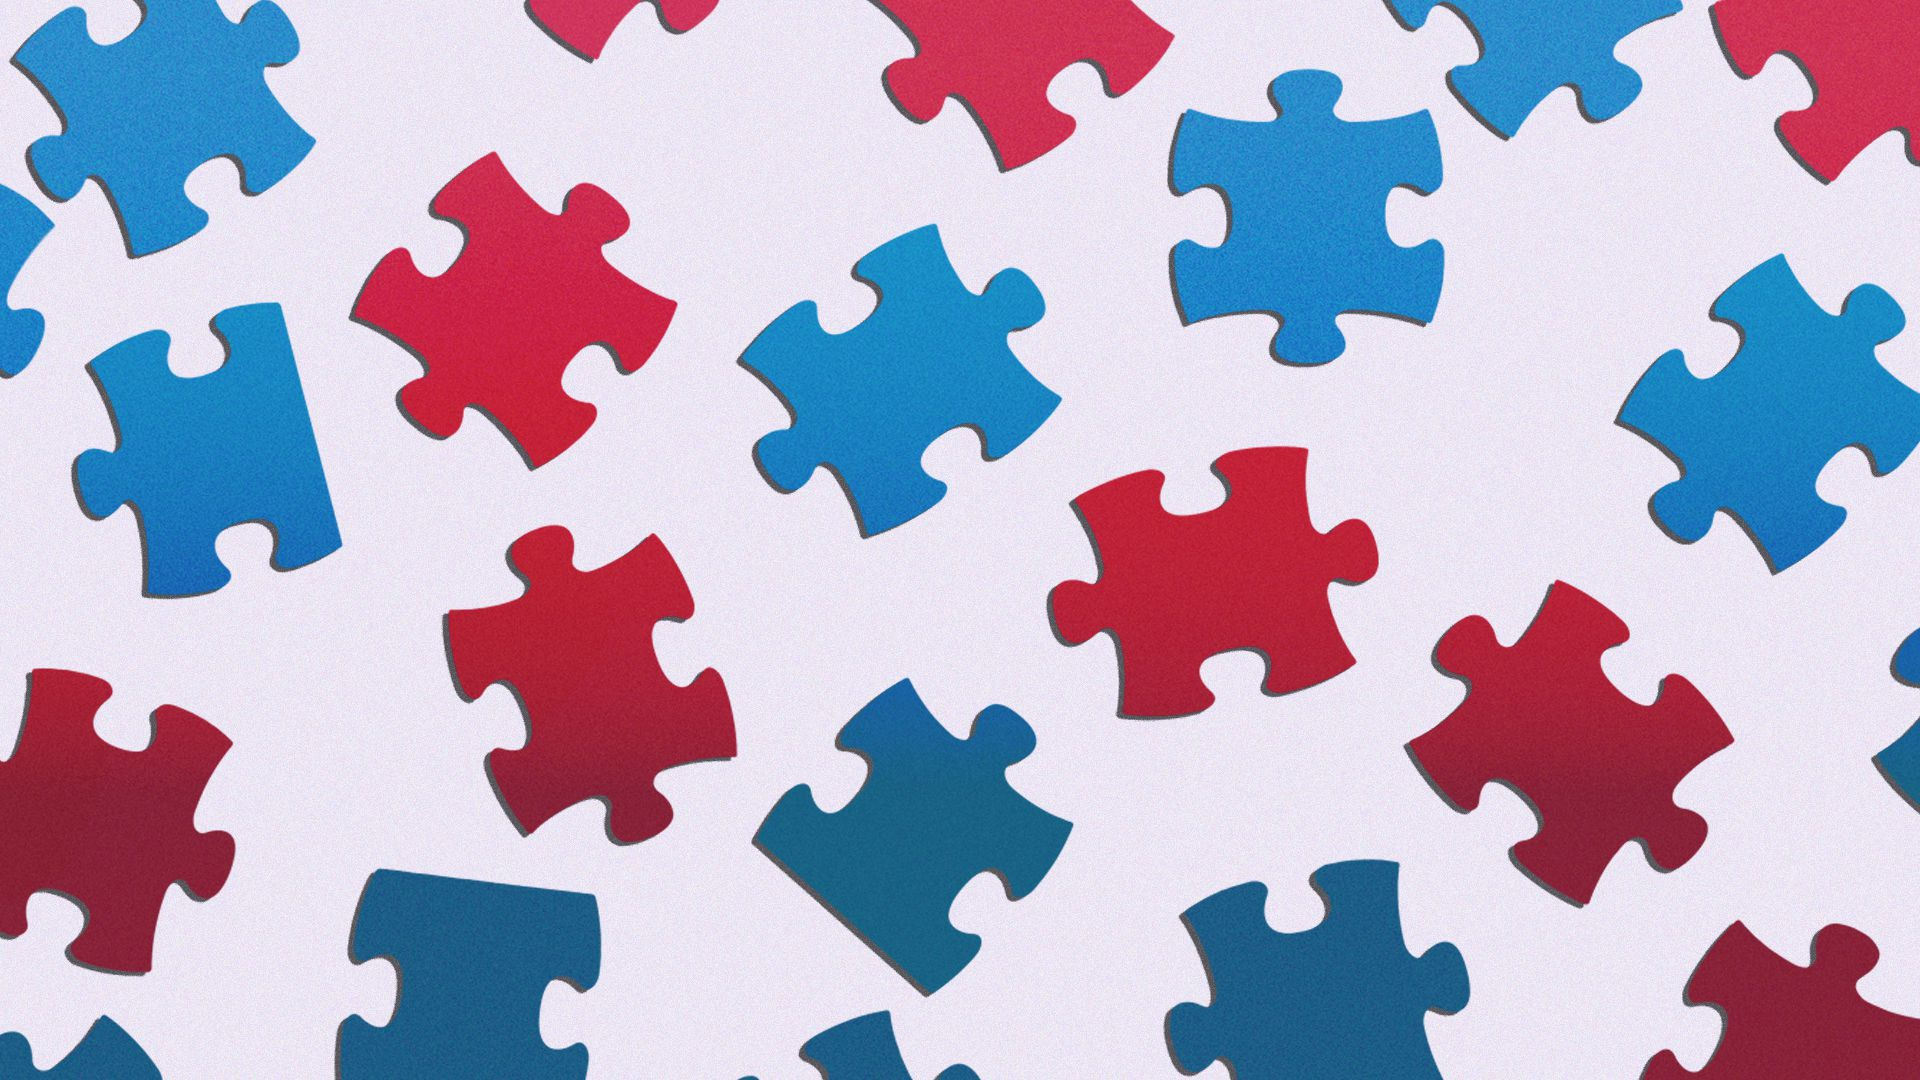 Illustration of scattered red and blue jigsaw puzzle pieces.